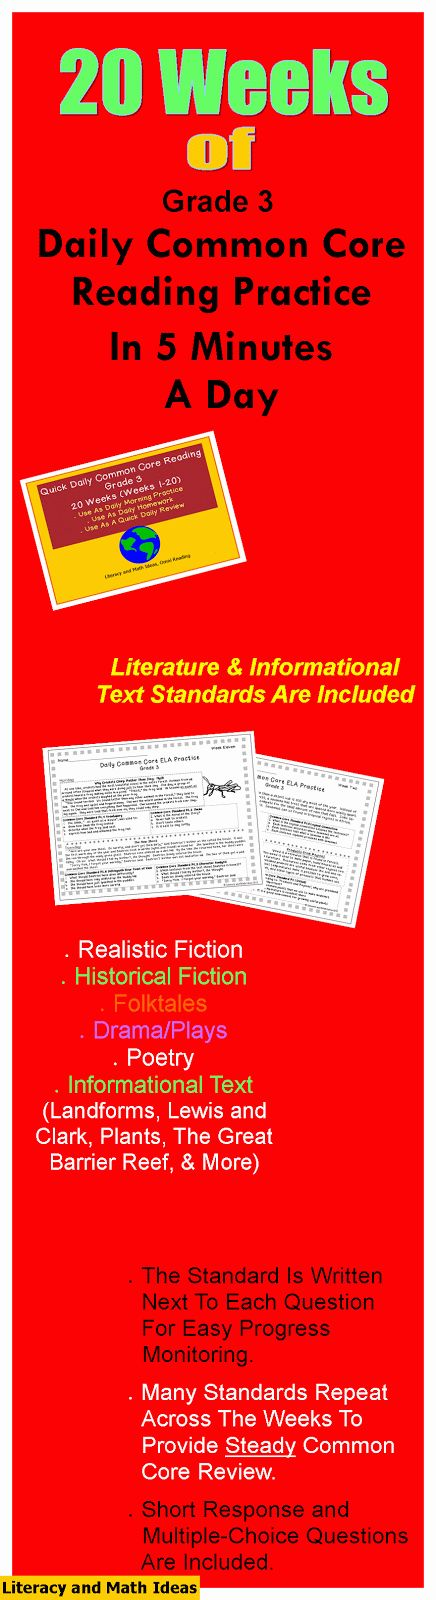 Literacy & Math Ideas: 20 Weeks of Grade 3 Daily Common Core Reading Practice.  Realistic fiction, historical fiction, informational text and more are all included.  Most standards repeat across the weeks to provide steady Common Core practice.  Excellent as morning practice or as Common Core homework.